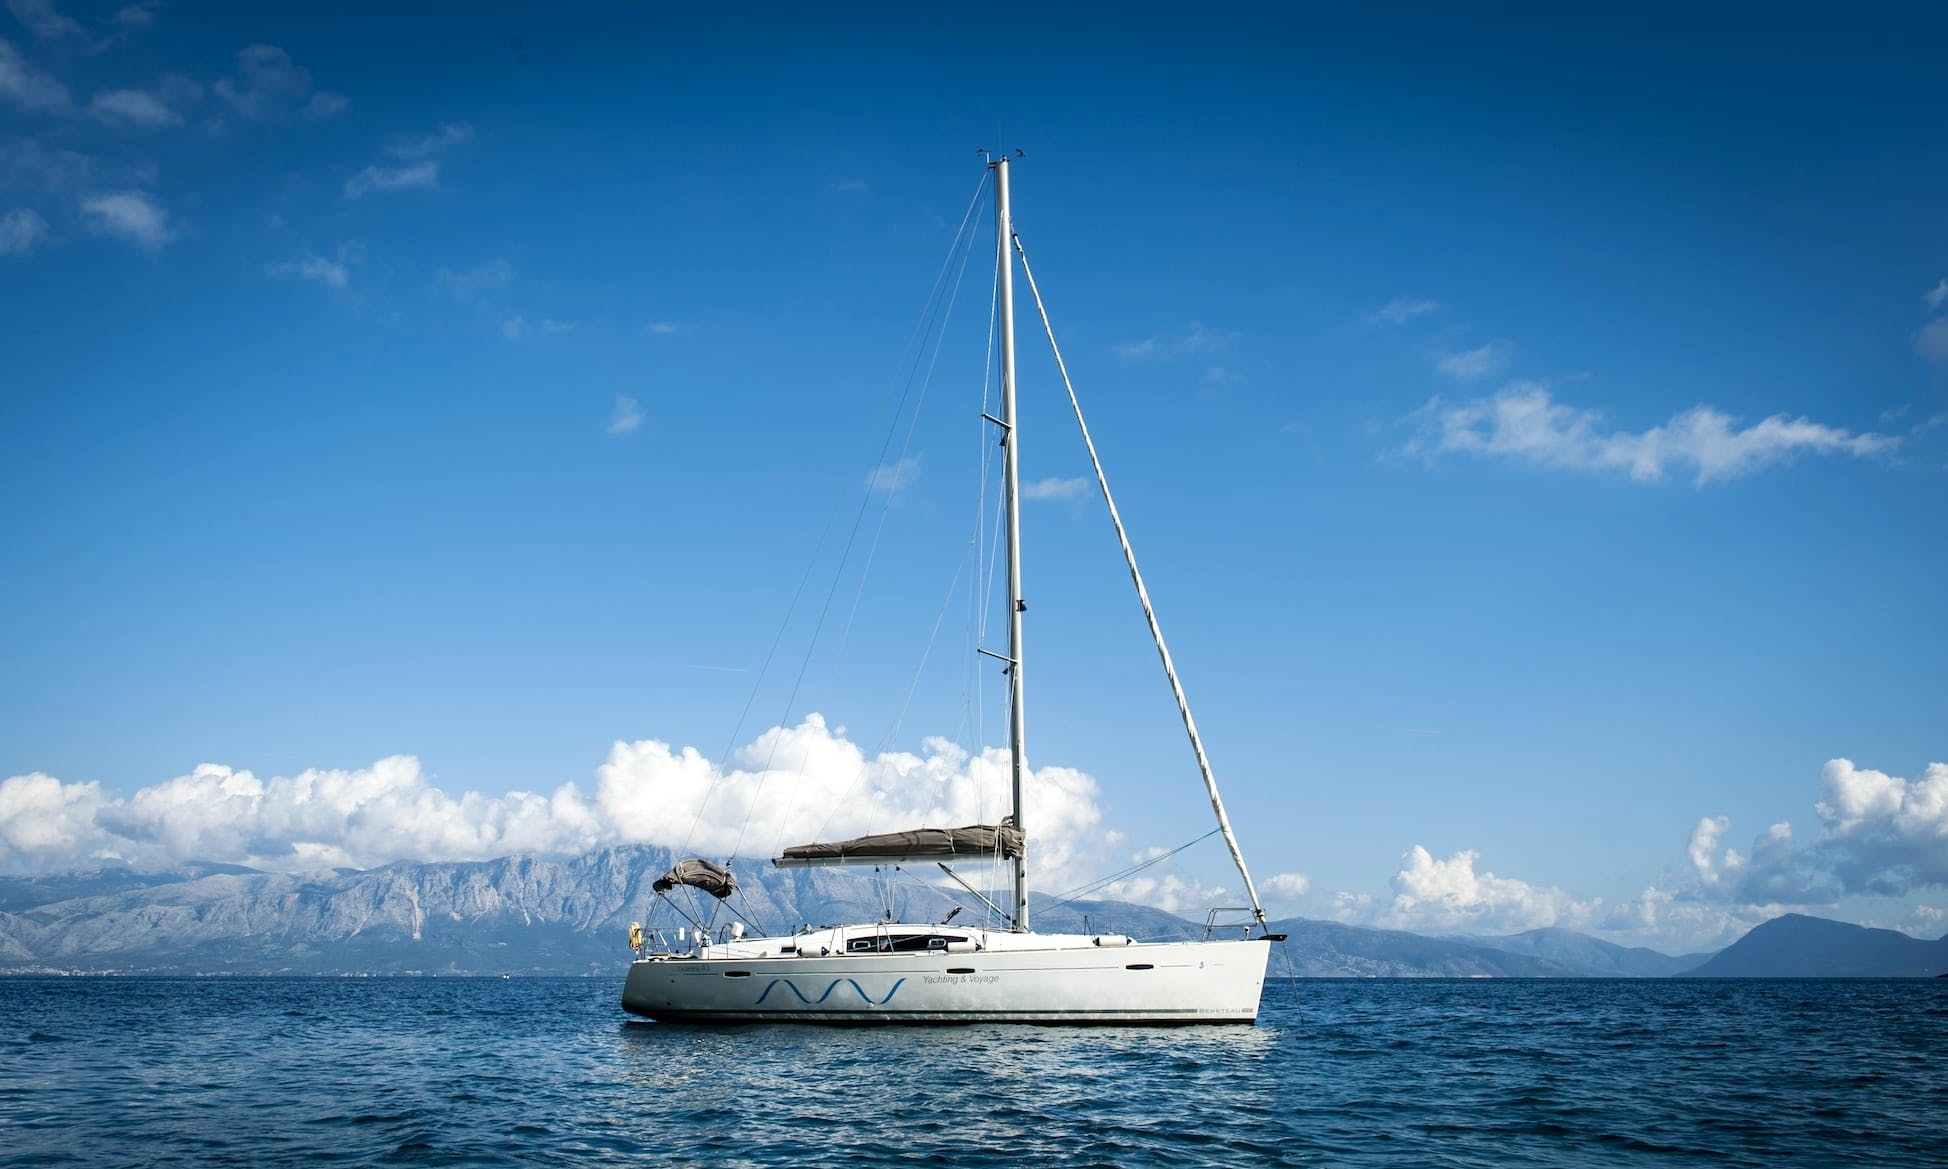 Perfect Sailing Adventure in Lefkada, Greece on this Sailing Yacht